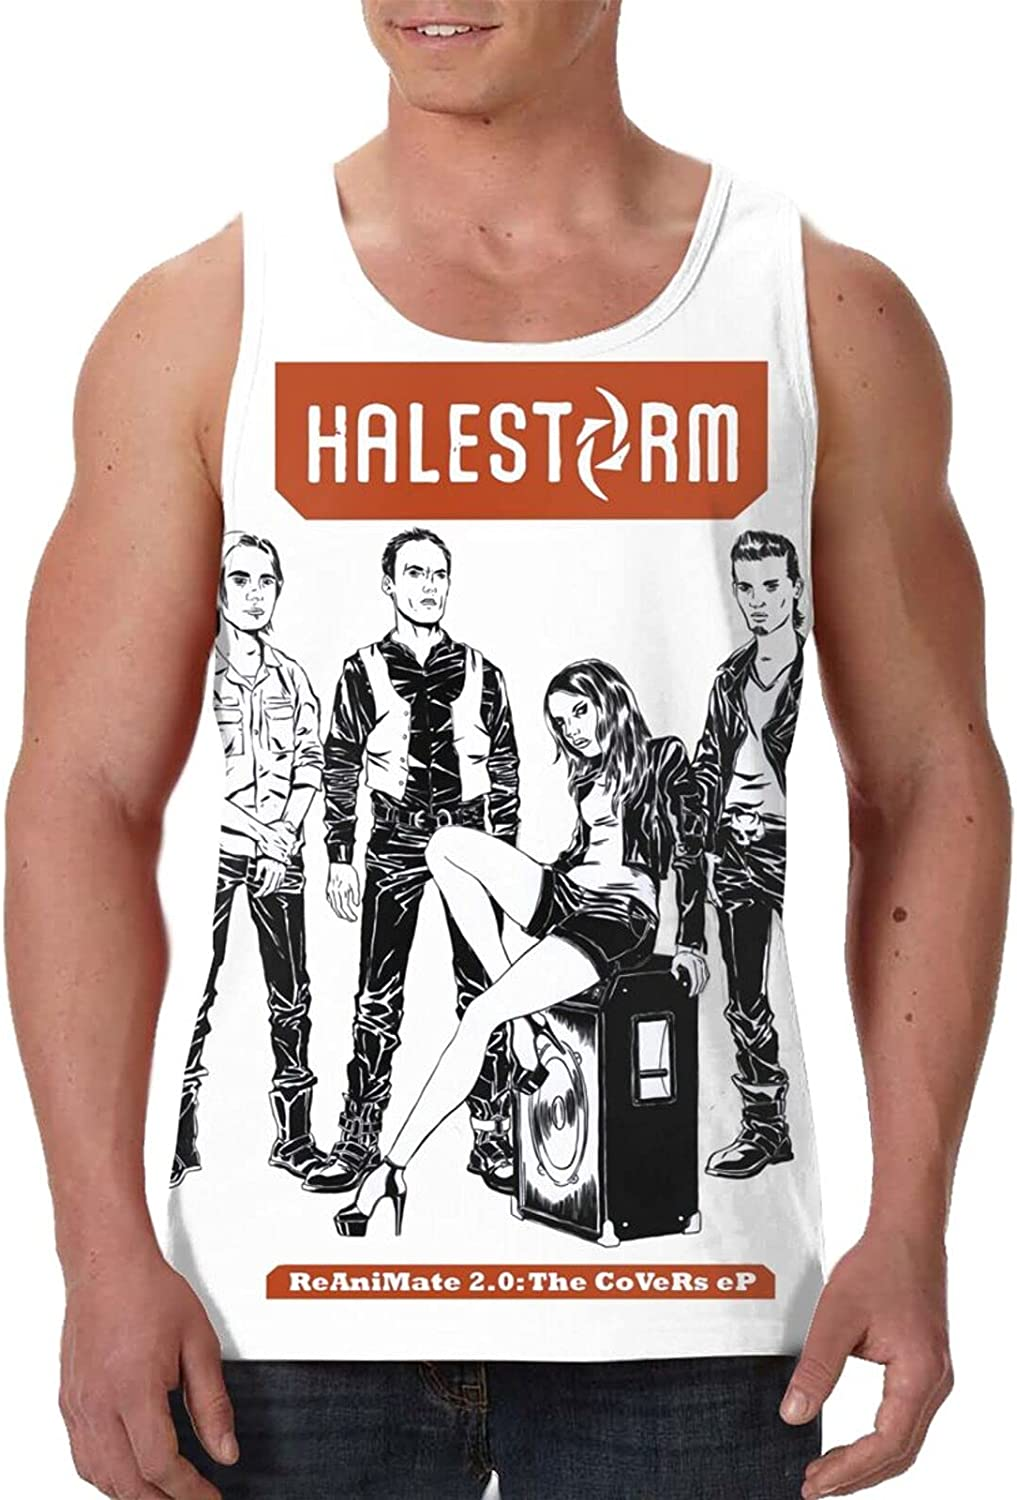 Halestorm Reanimate 2.0 The Covers Ep Tank Top T Shirt Mens Summer Fashion O Neck Tops Sports Sleeveless Vest